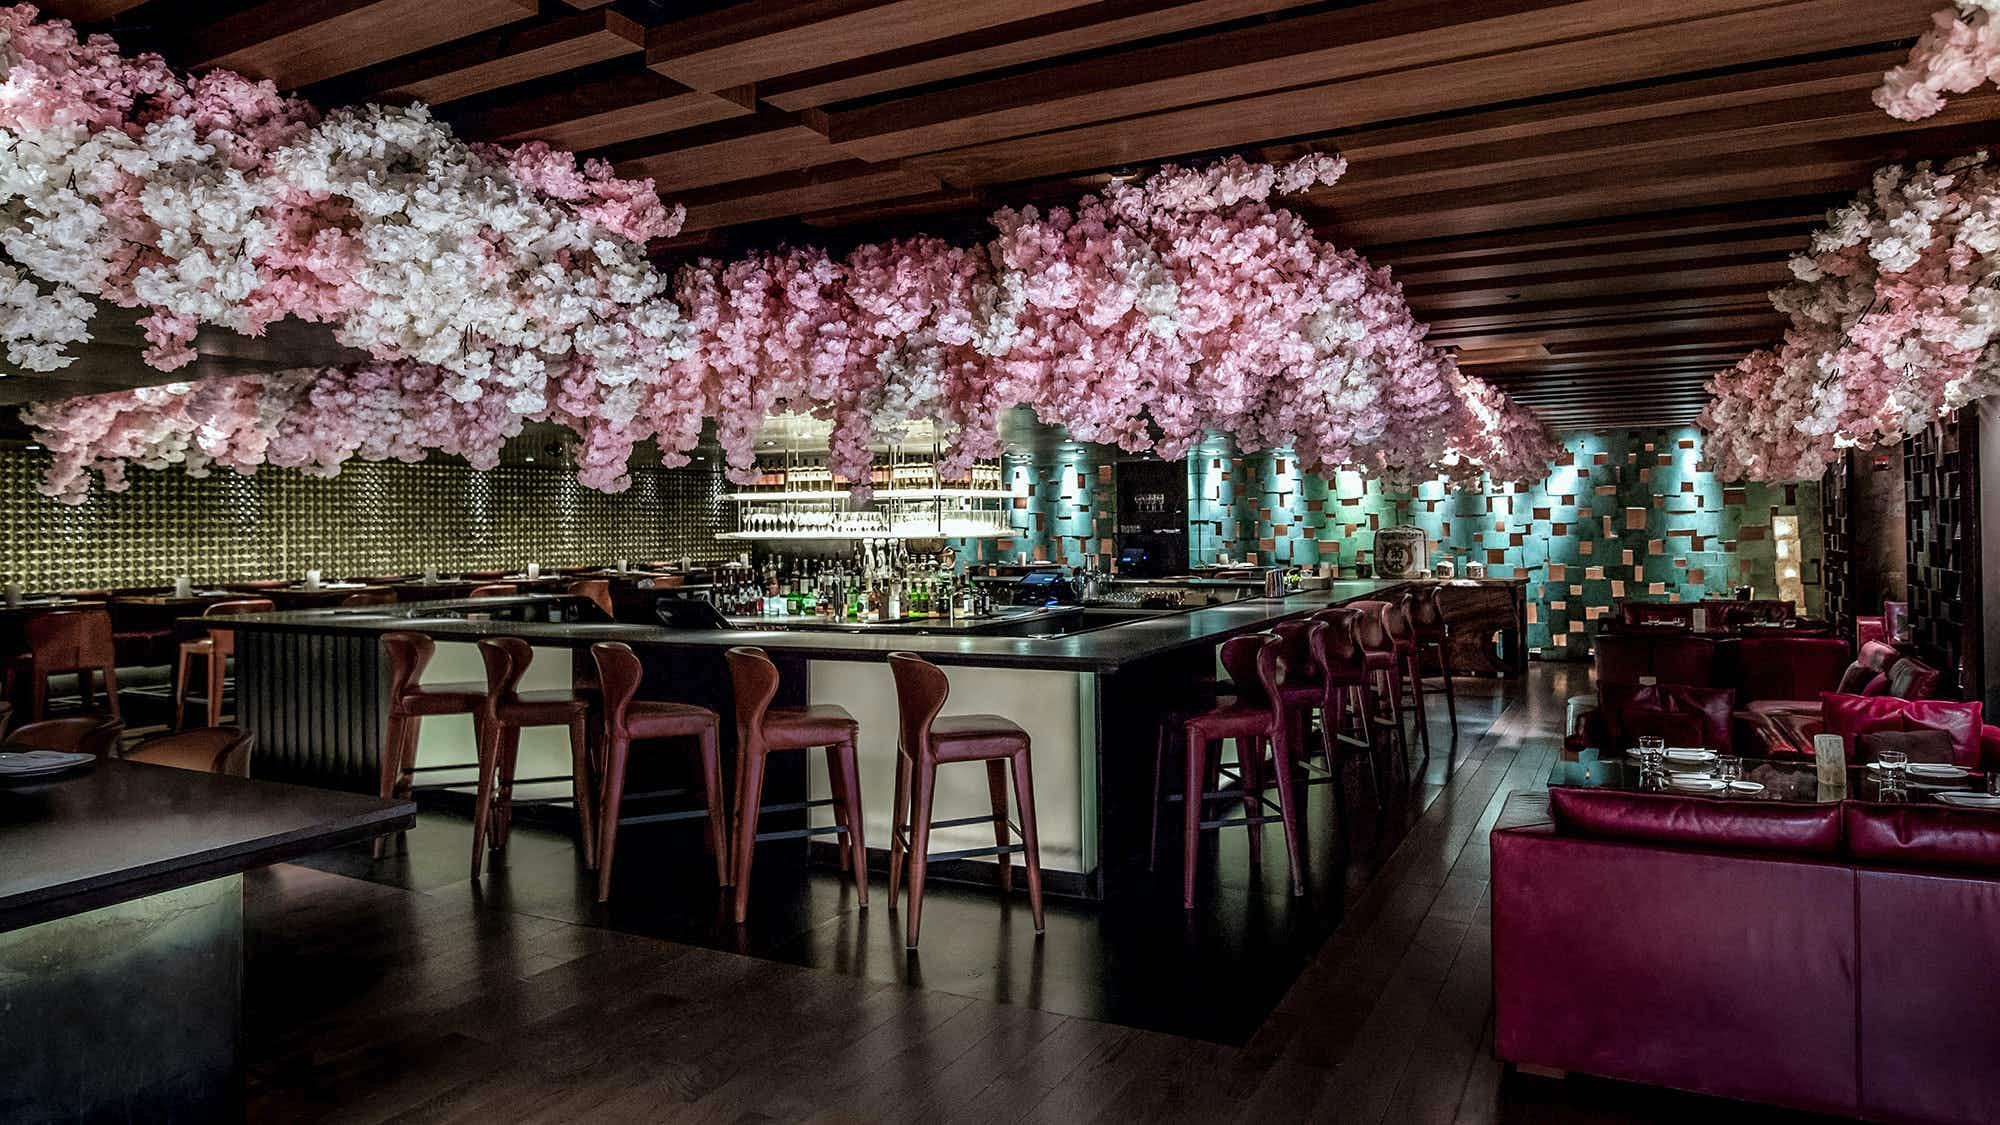 This NYC restaurant has been transformed by 1000 cherry blossoms